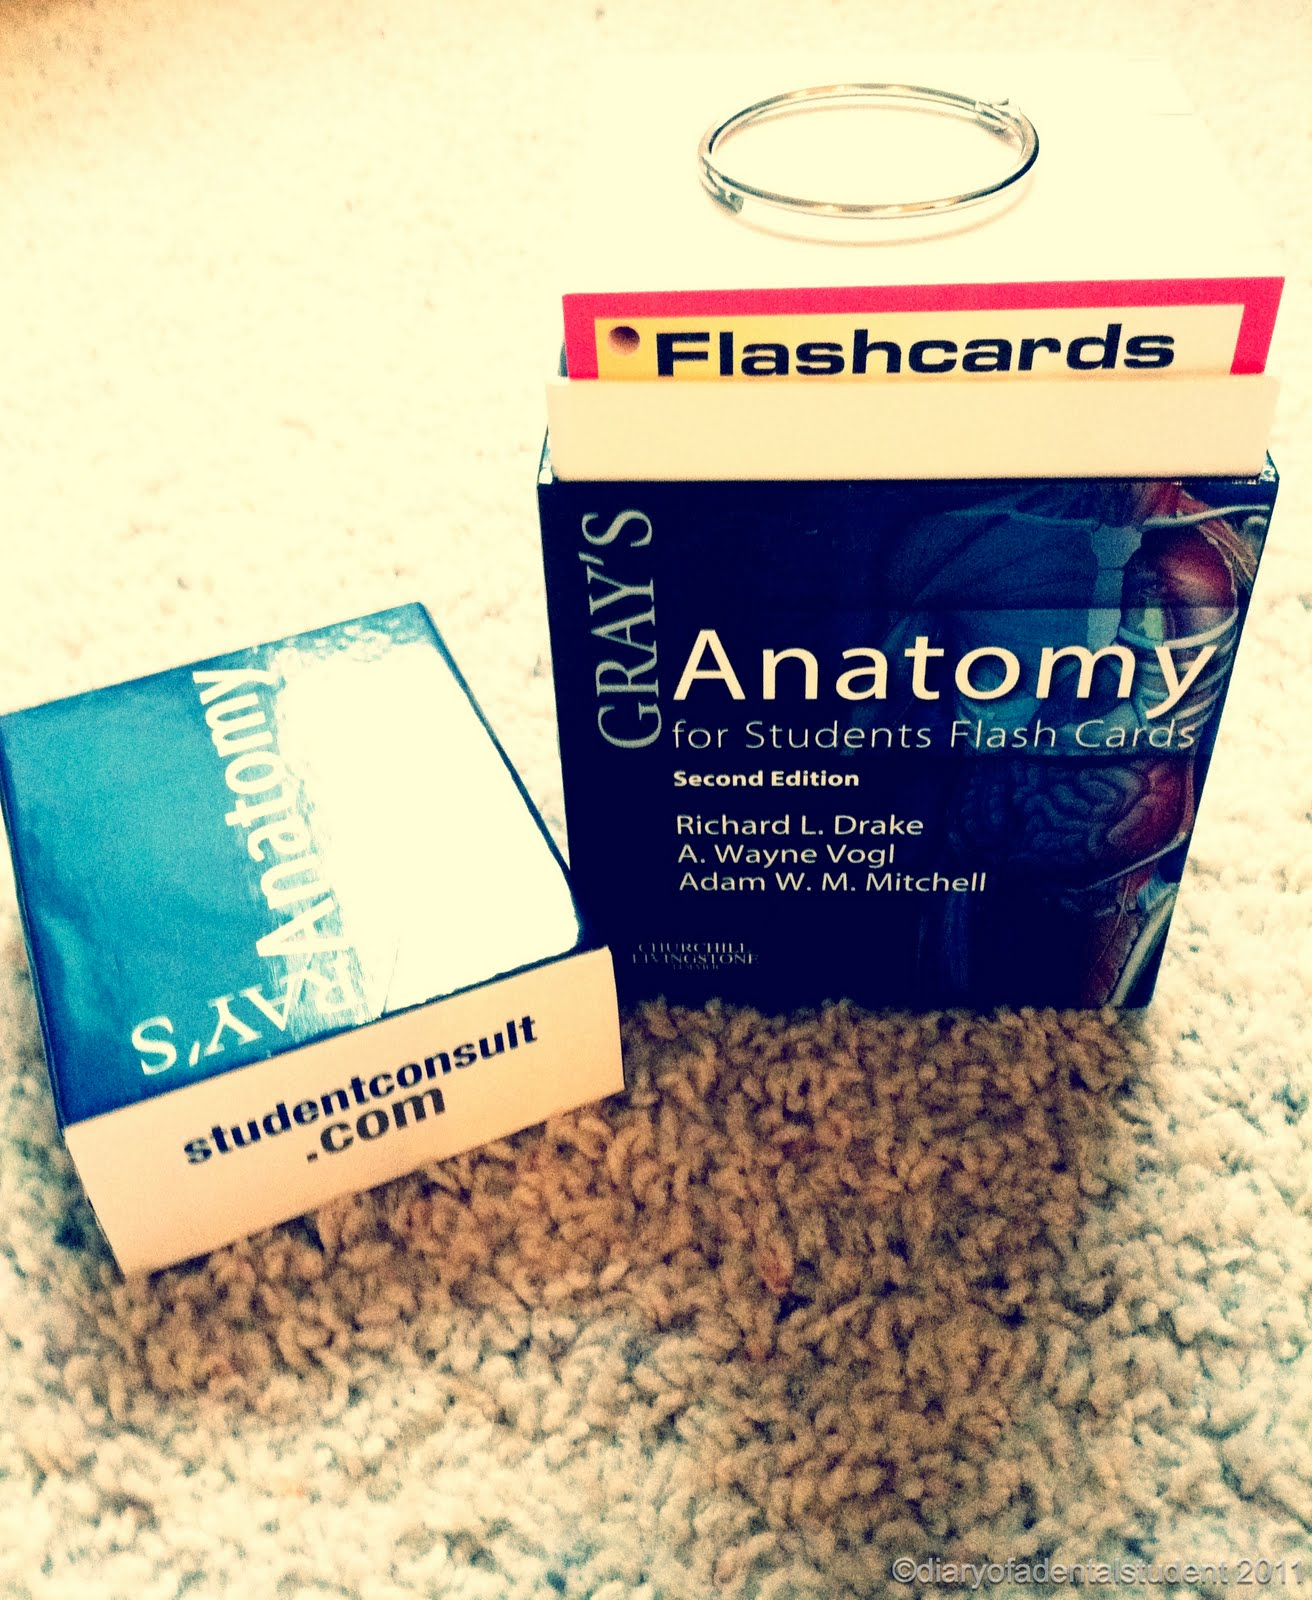 diary of a dental student: Study Aids?!